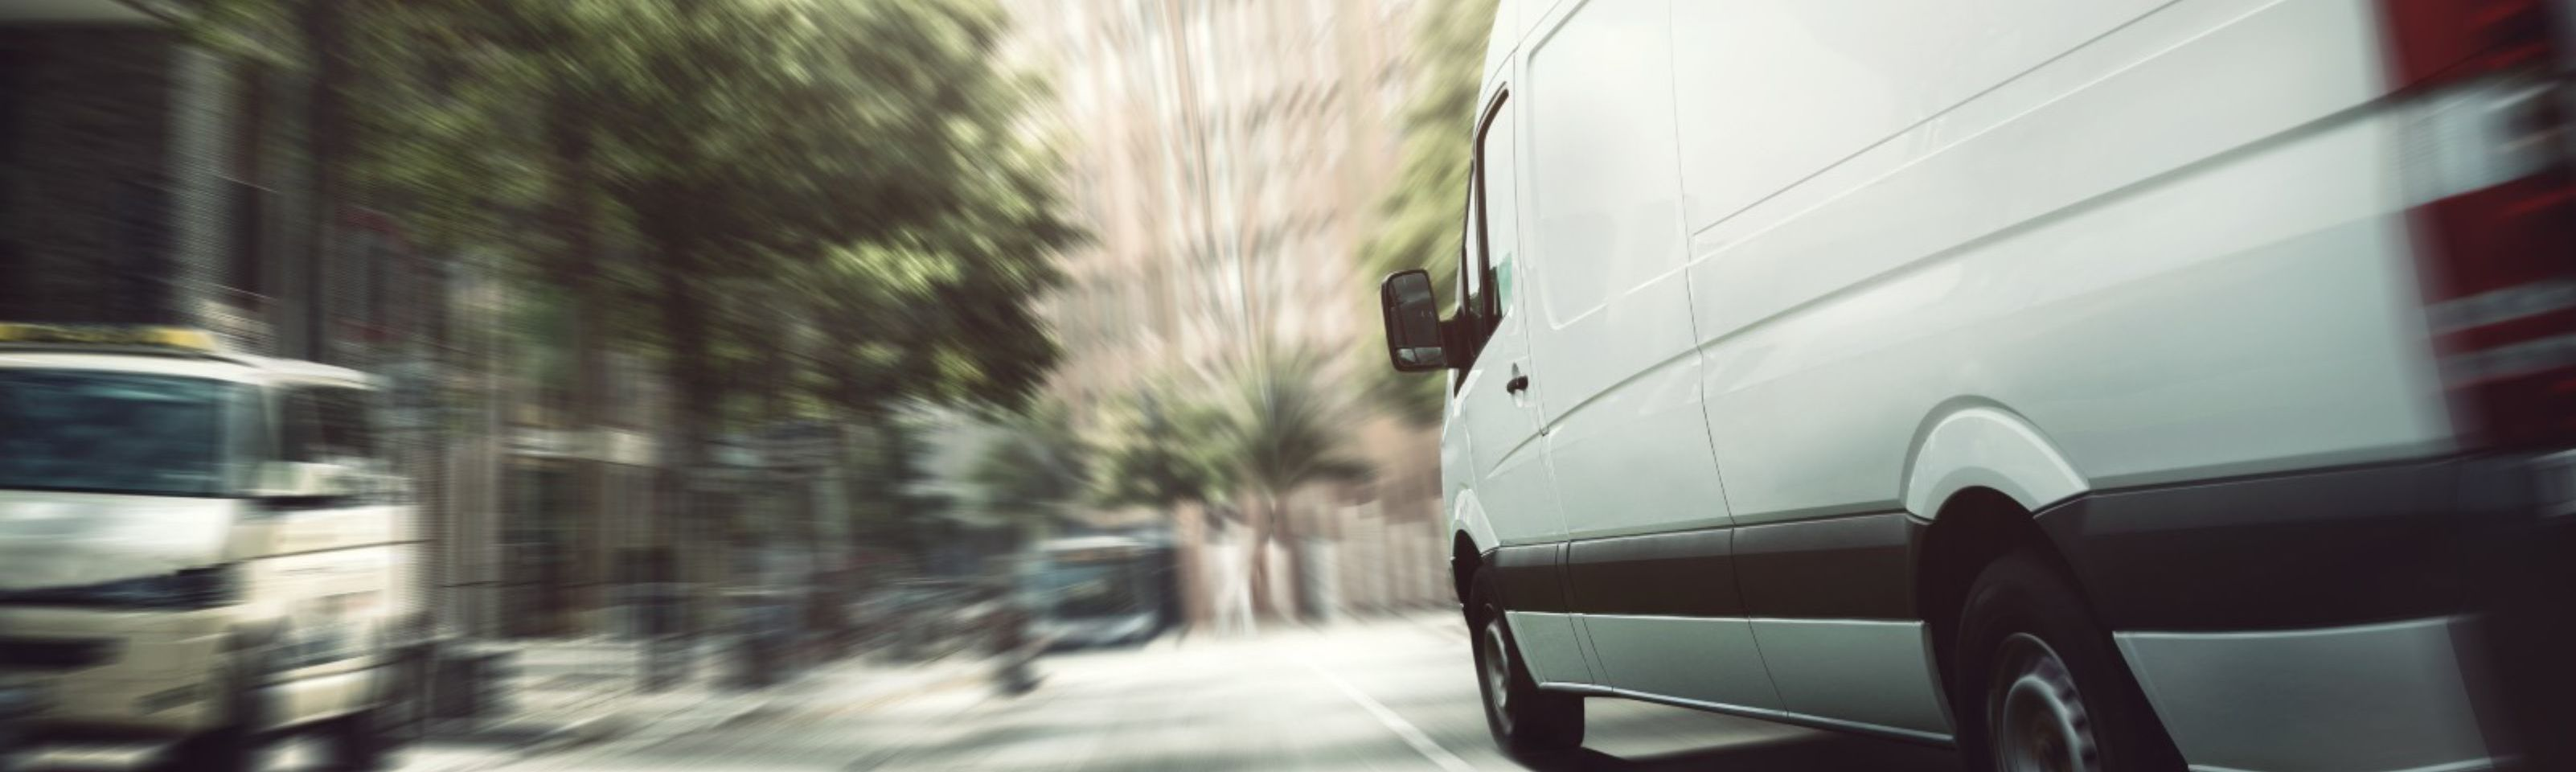 Everything you need to know about van licences - explained